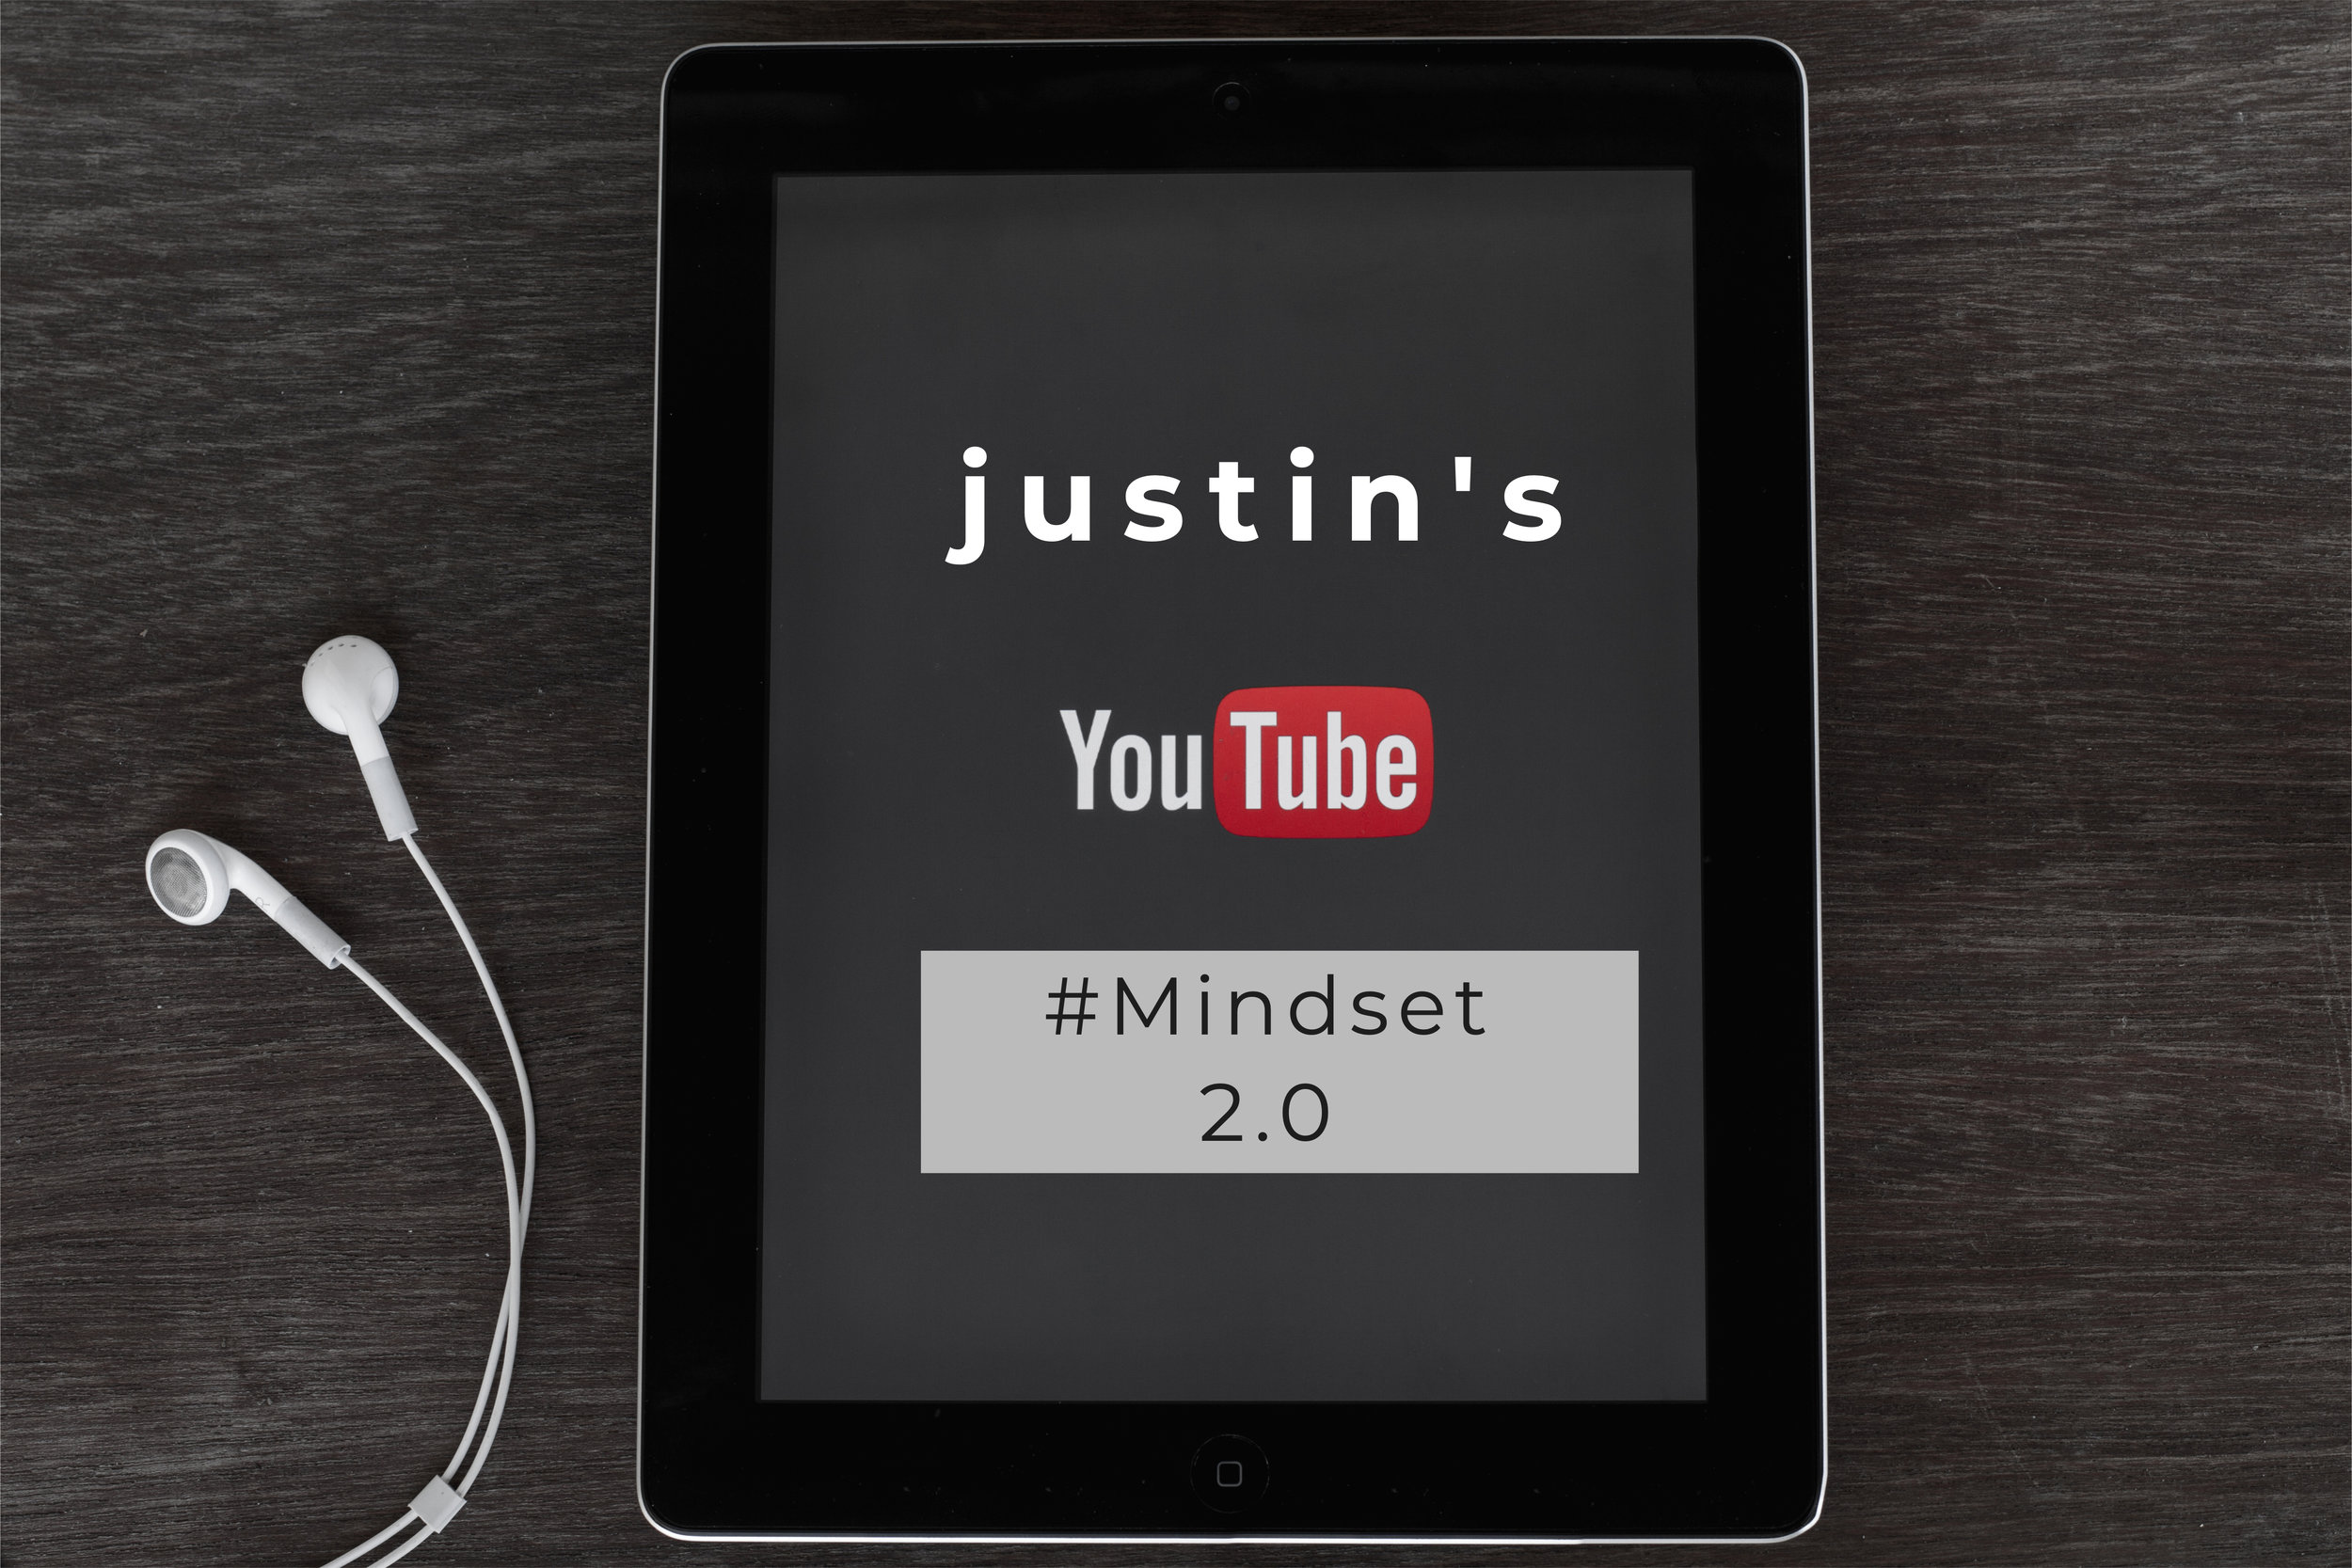 Click here to go to view justin's videos from youtube